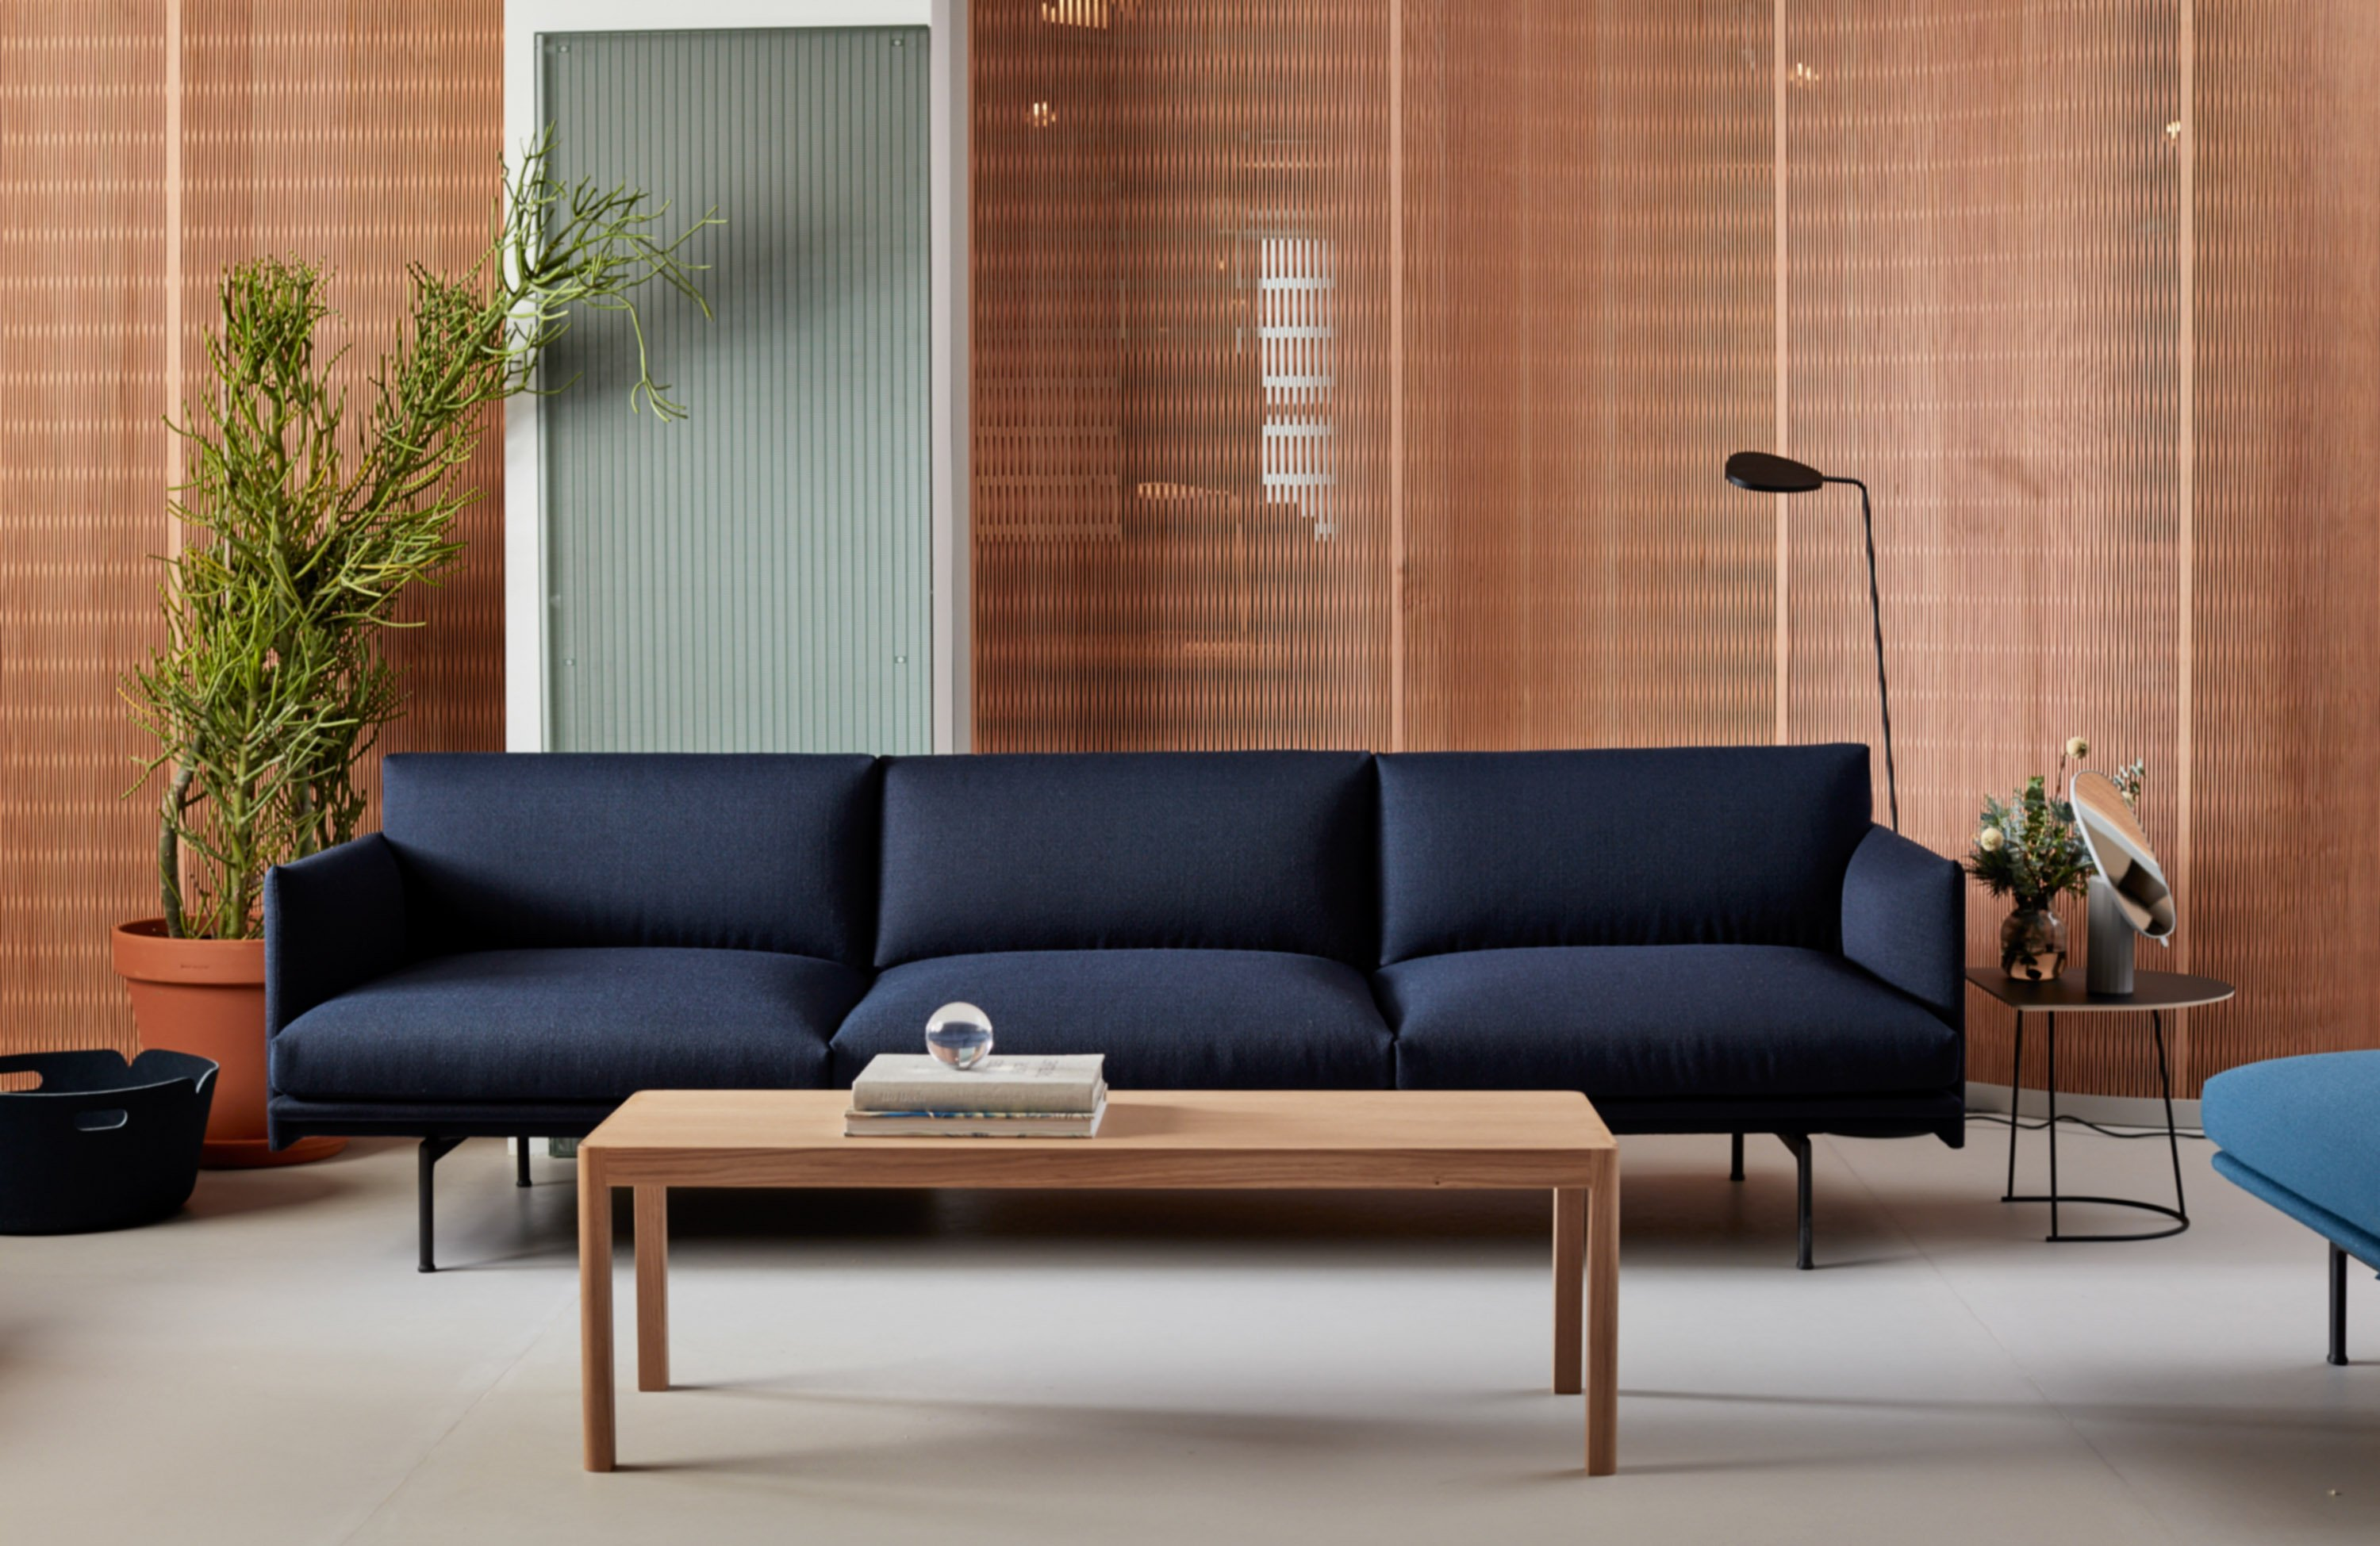 AFFORDABLE LUXURY FOR THE MODERN OFFICE sofa